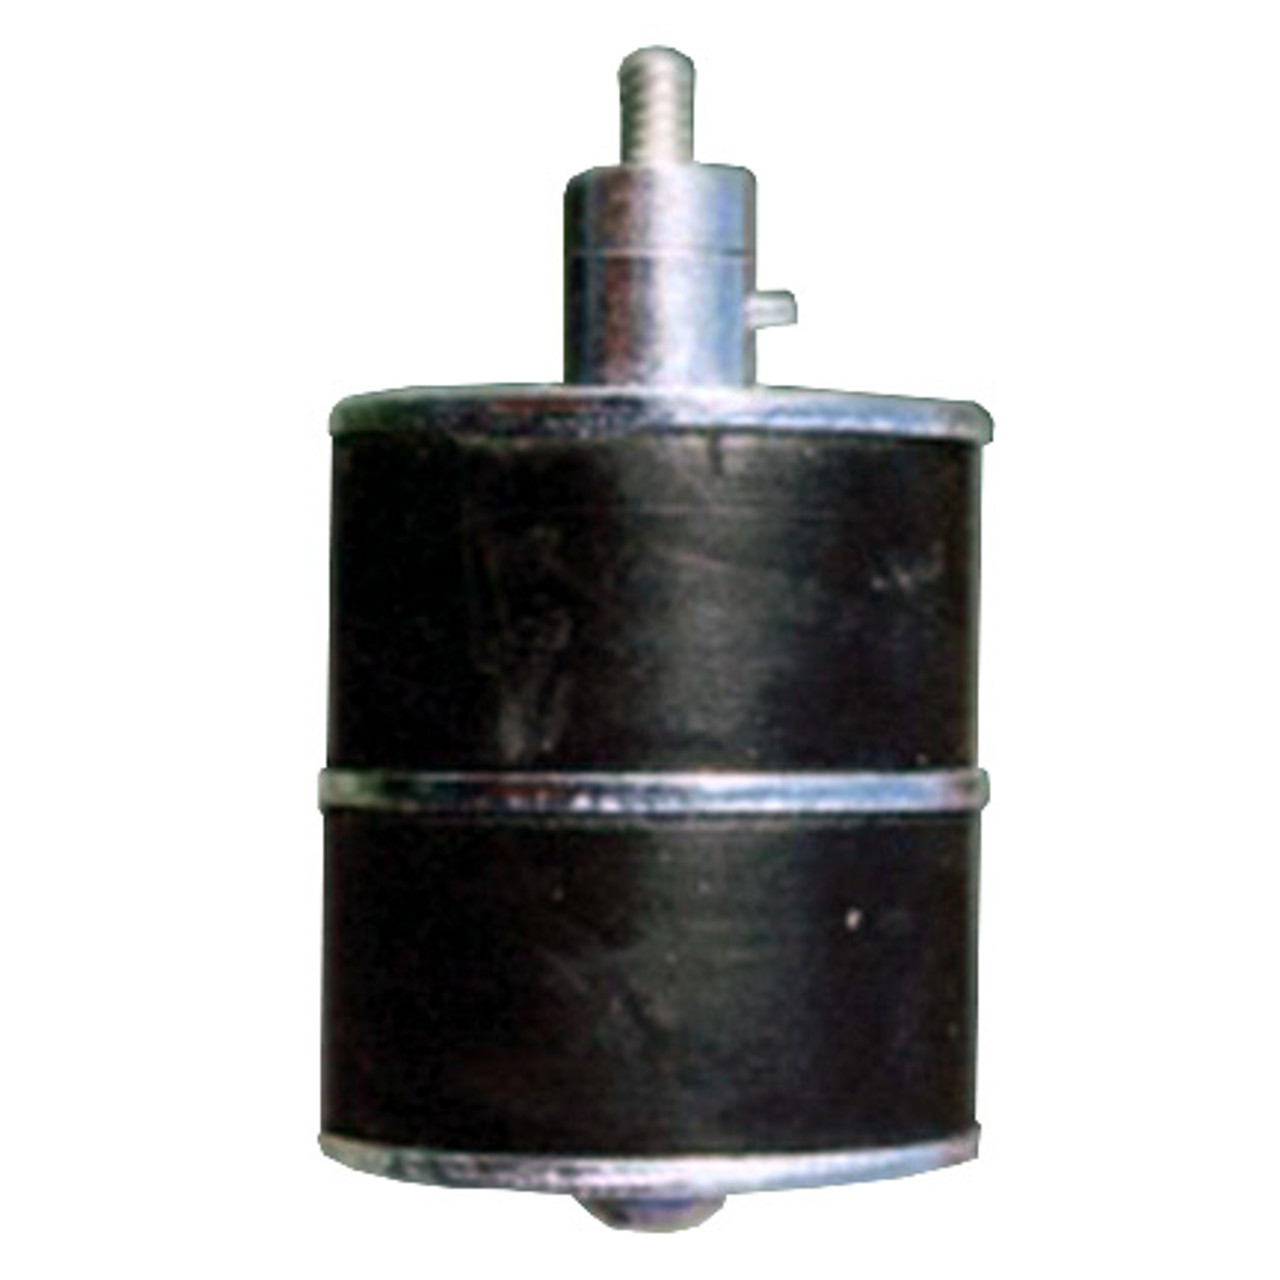 """Specially designed to temporarily seal and stop off pipe ends remotely during fitting renewal or service line maintenance. Reusable, rugged, and lightweight made from Nitrile rubber and plated steel available in a variety of sizes, ranging from 1/2"""" through 2"""" Also used as a tamper resistant night cap to prevent unwanted material such as dirt, water, debris, animals, etc. from entering open ended pipes. This is critically important when protecting your expensive pipeline projects. These pipe plugs are composed of two steel """"discs,"""" which are compressed together by tightening the central bolt using the Special Expansion Plug Wrench. As the discs are compressed together, the rubber expands, ensuring a tight fit inside the diameter of the pipe. These detachable plugs offer a gas tight seal making it easy to change out a valve or fitting."""